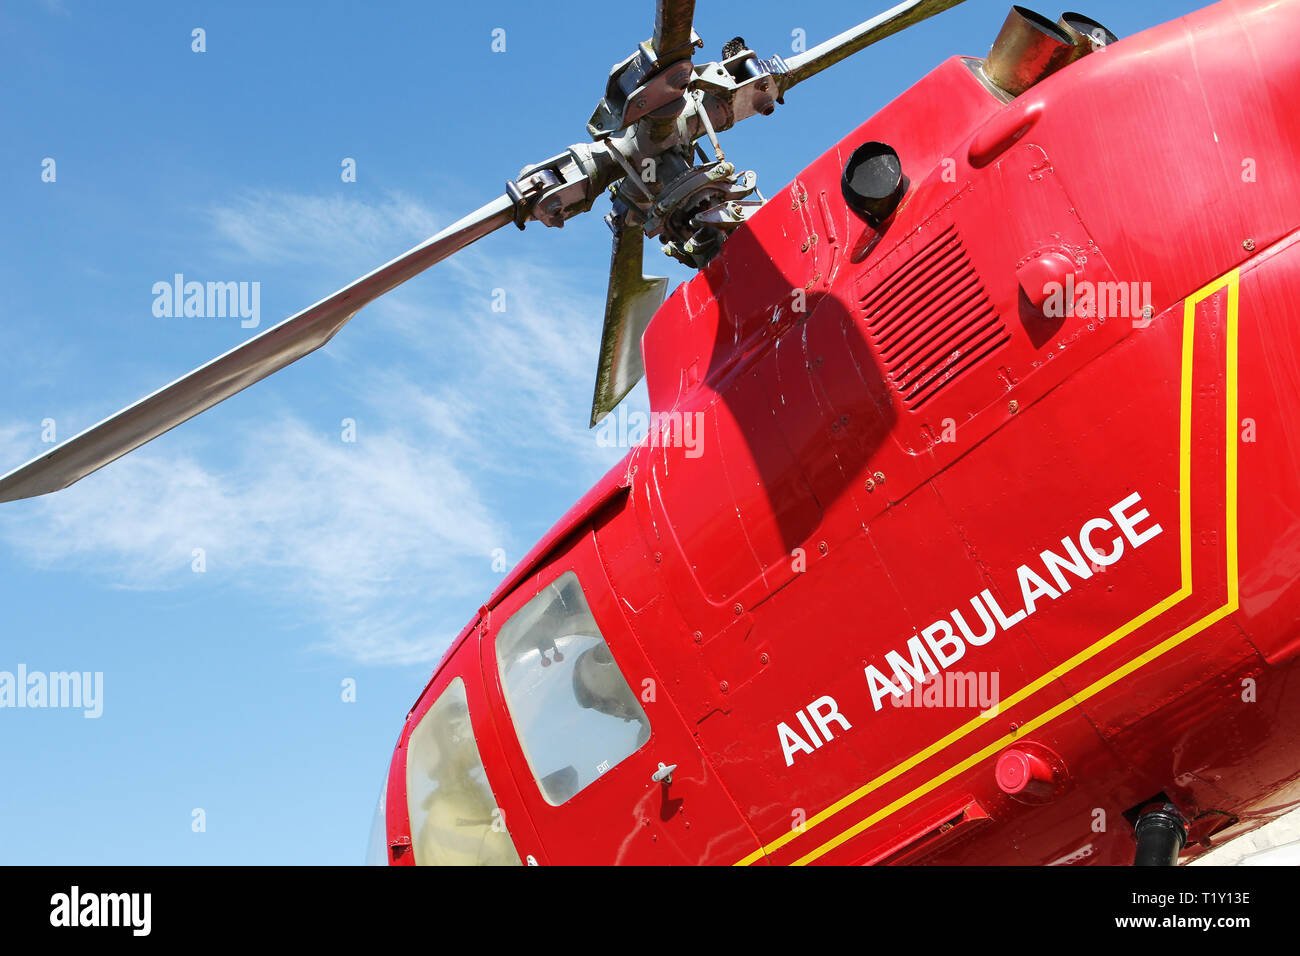 Red helicopter of air ambulance isolated on blue sky background. Detail of the helicopter blades. Cornwall, UK - Stock Image